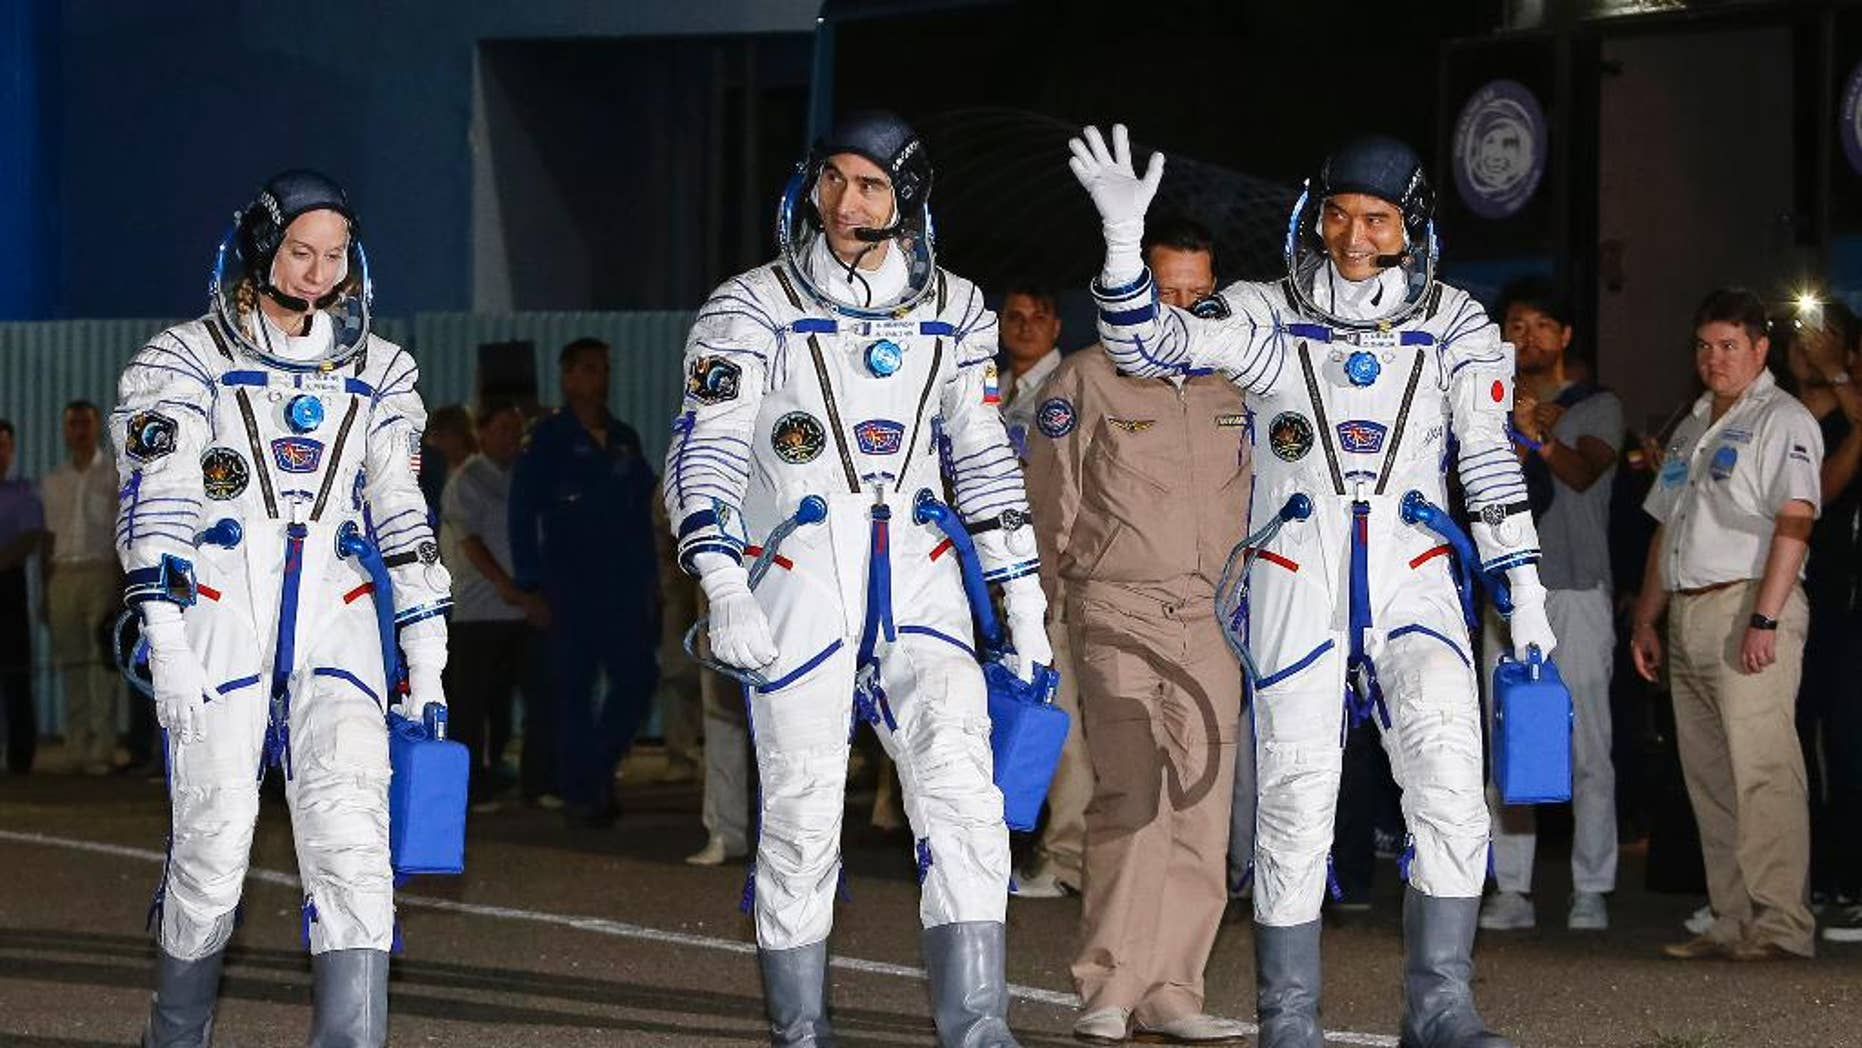 July 7, 2016: U.S. astronaut Kate Rubins, left, Russian cosmonaut Anatoly Ivanishin, centre, and Japanese astronaut Takuya Onishi, members of the main crew of the expedition to the International Space Station (ISS), walk to report to members of the State Committee prior to the launch of Soyuz MS space ship at the Russian leased Baikonur cosmodrome, Kazakhstan.